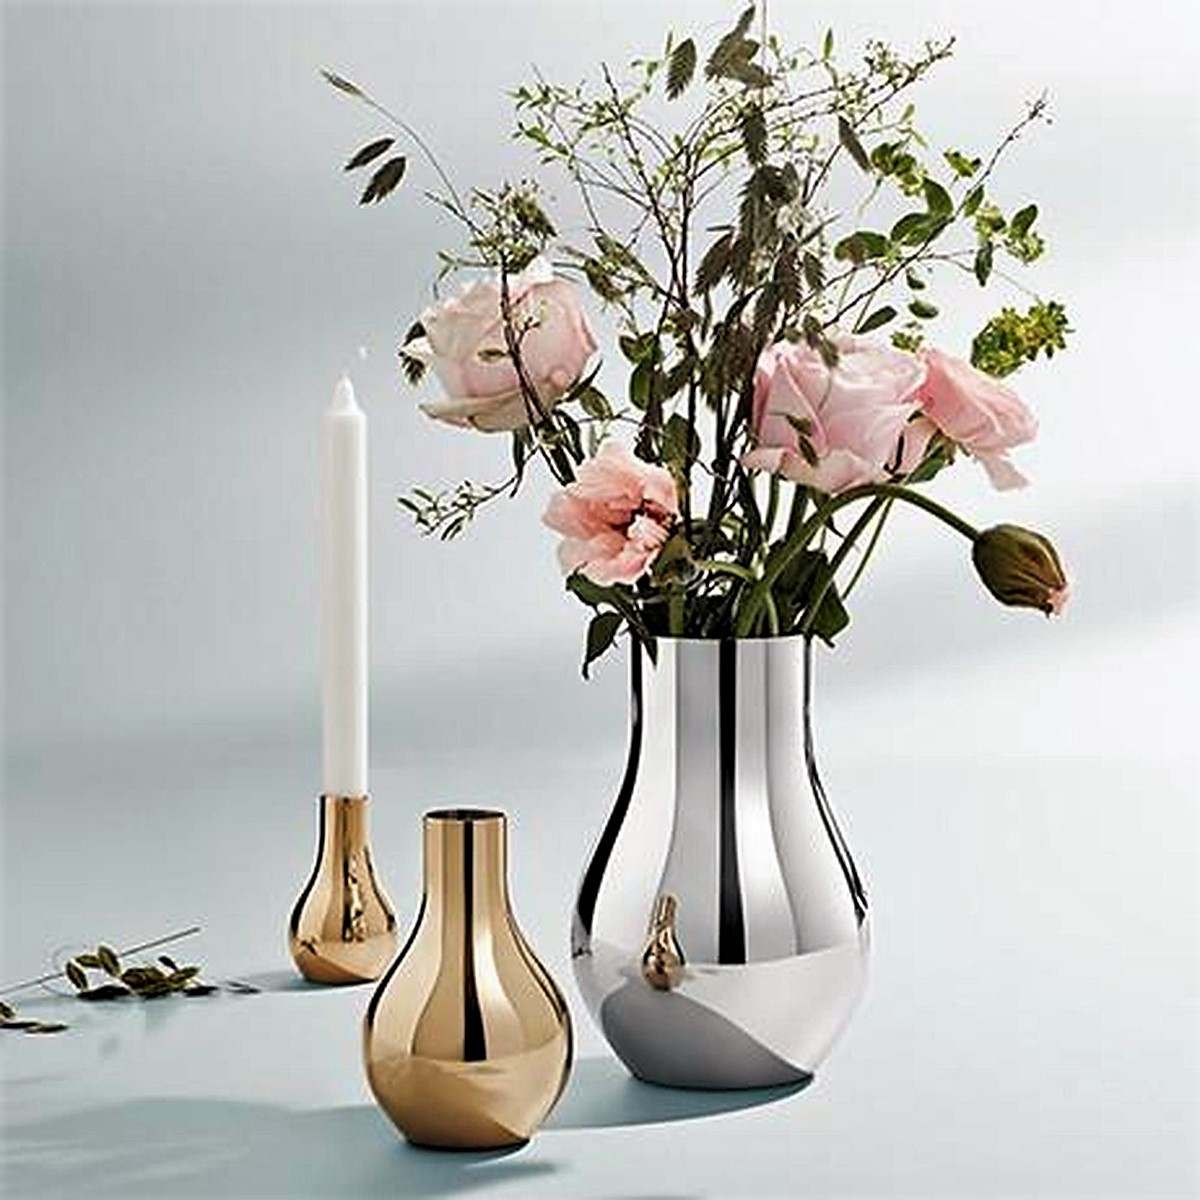 Georg Jensen - Cafu Collection Vase Stainless Steel & Gold plated